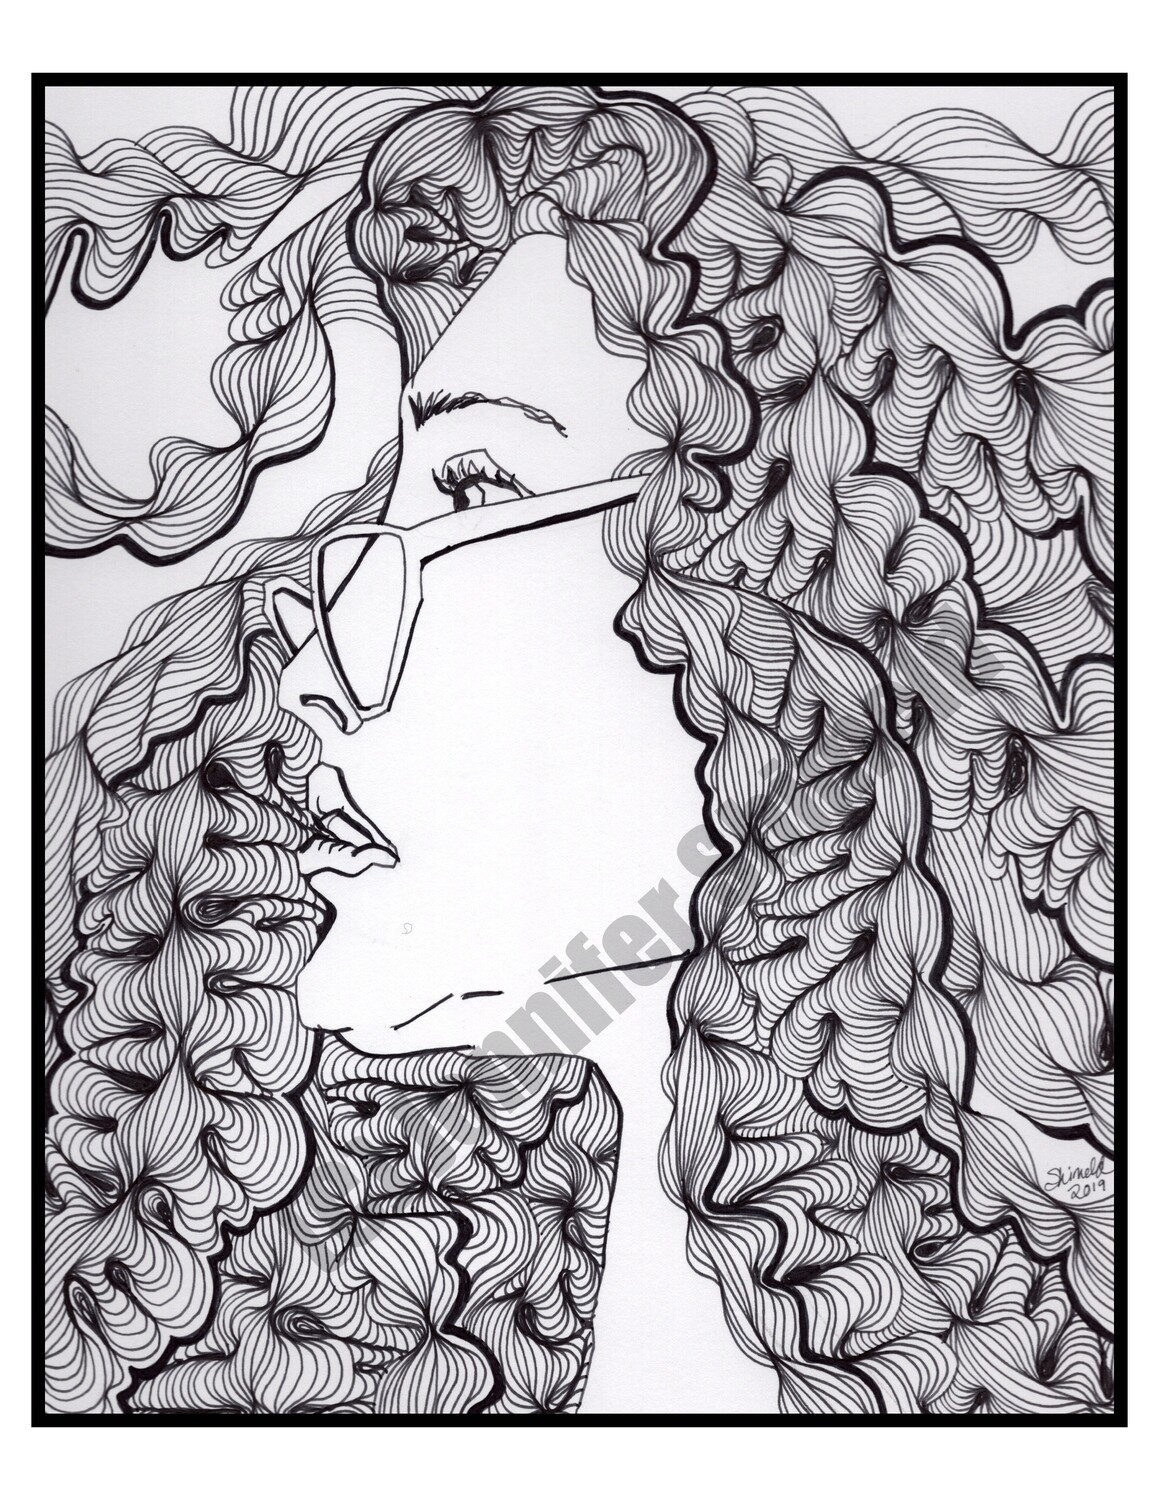 """Digital Download Lady with Wavy Hair Abstract Pen and Ink Contour Line Drawing 8.5""""x11"""" 300dpi"""